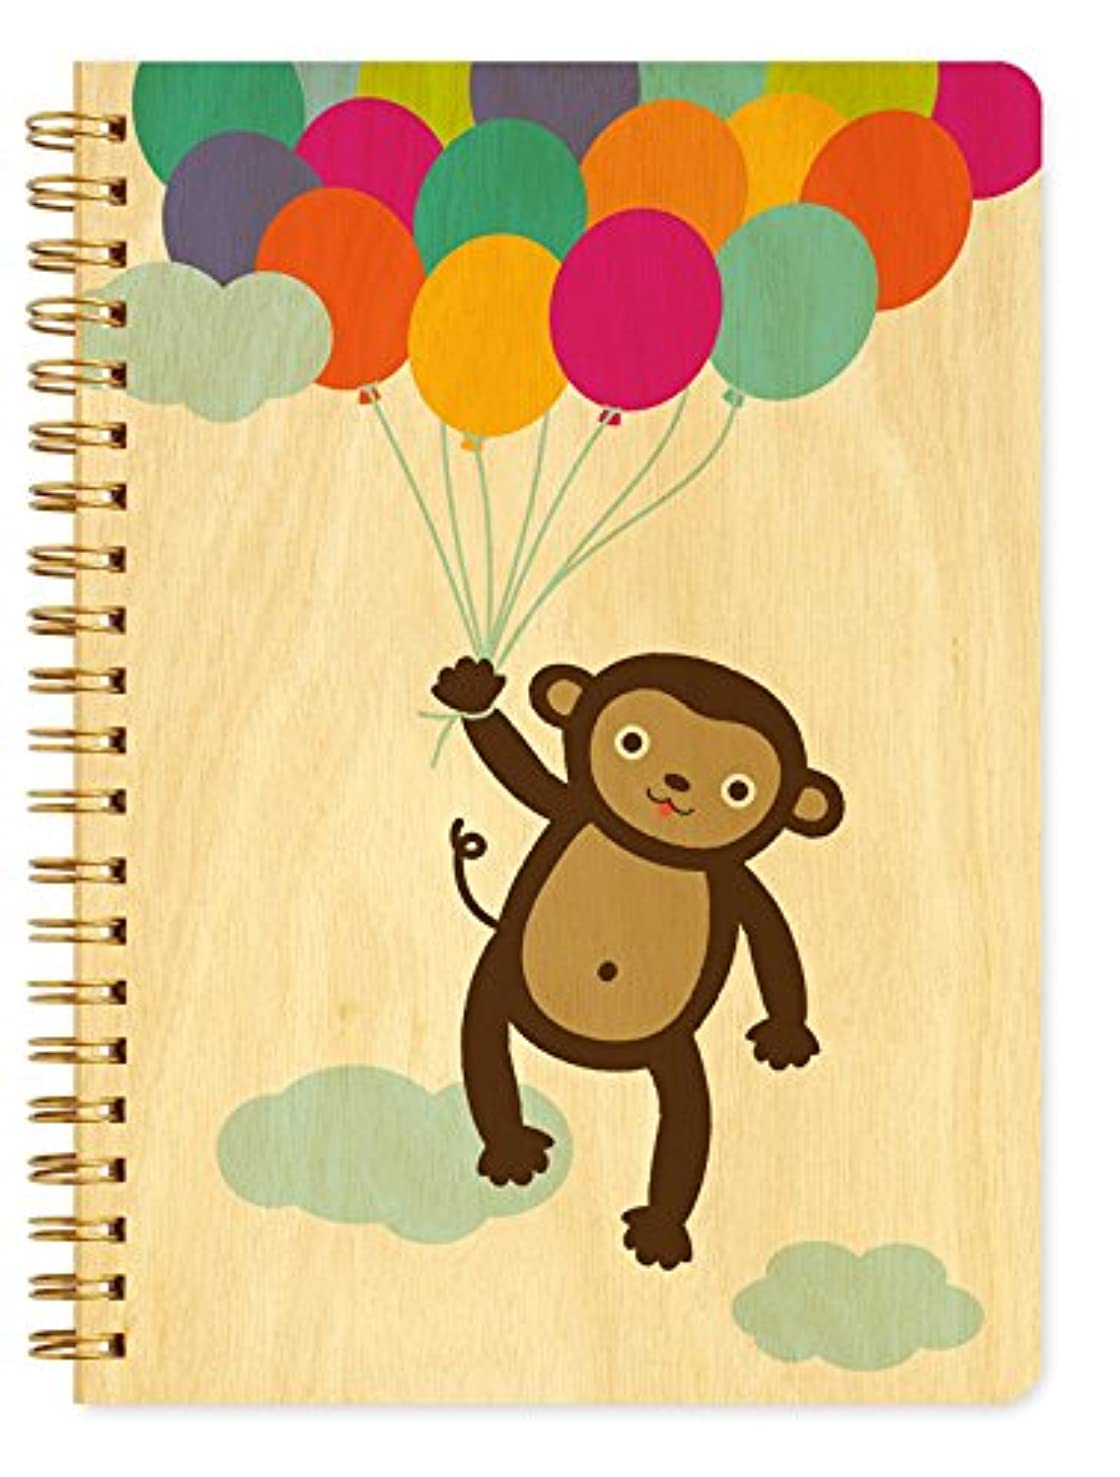 Night Owl Paper Goods Monkey Balloons Journal with Real Wood Covers